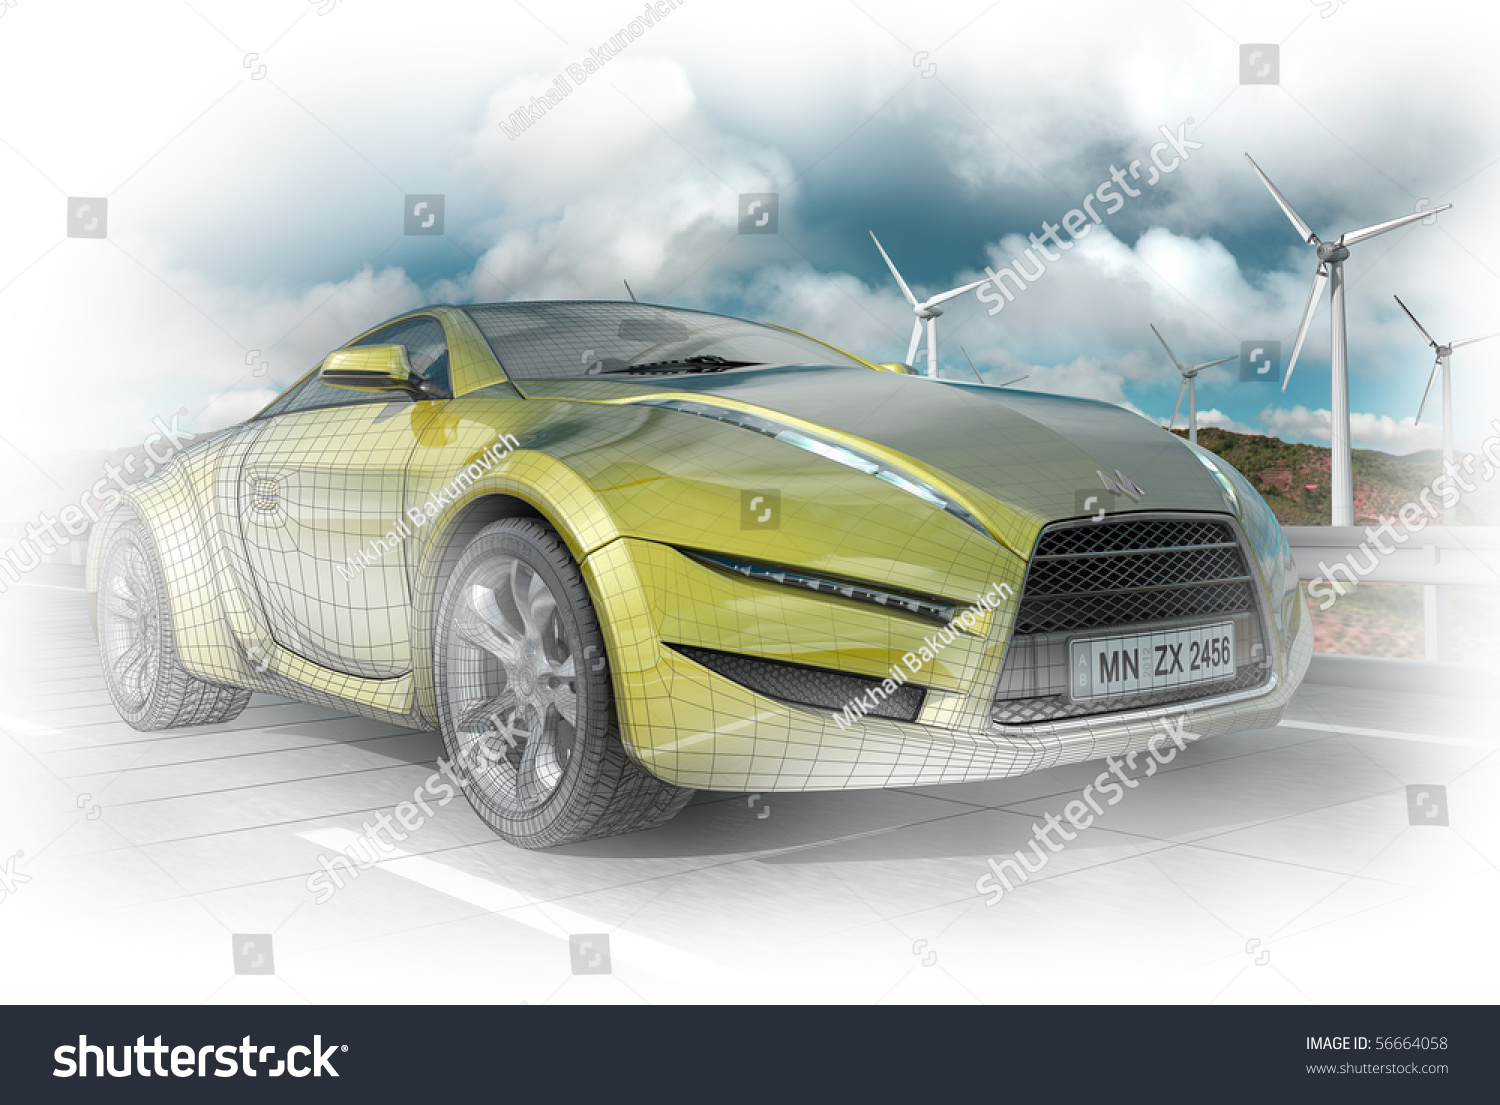 Concept Car Technology Wireframe Wire Center Chevrolet Gm Radio Cd 09383075 15764358 Delco Electronics Theft 3 D Render Stock Illustration 56664058 Rh Shutterstock Com Outline Clip Art